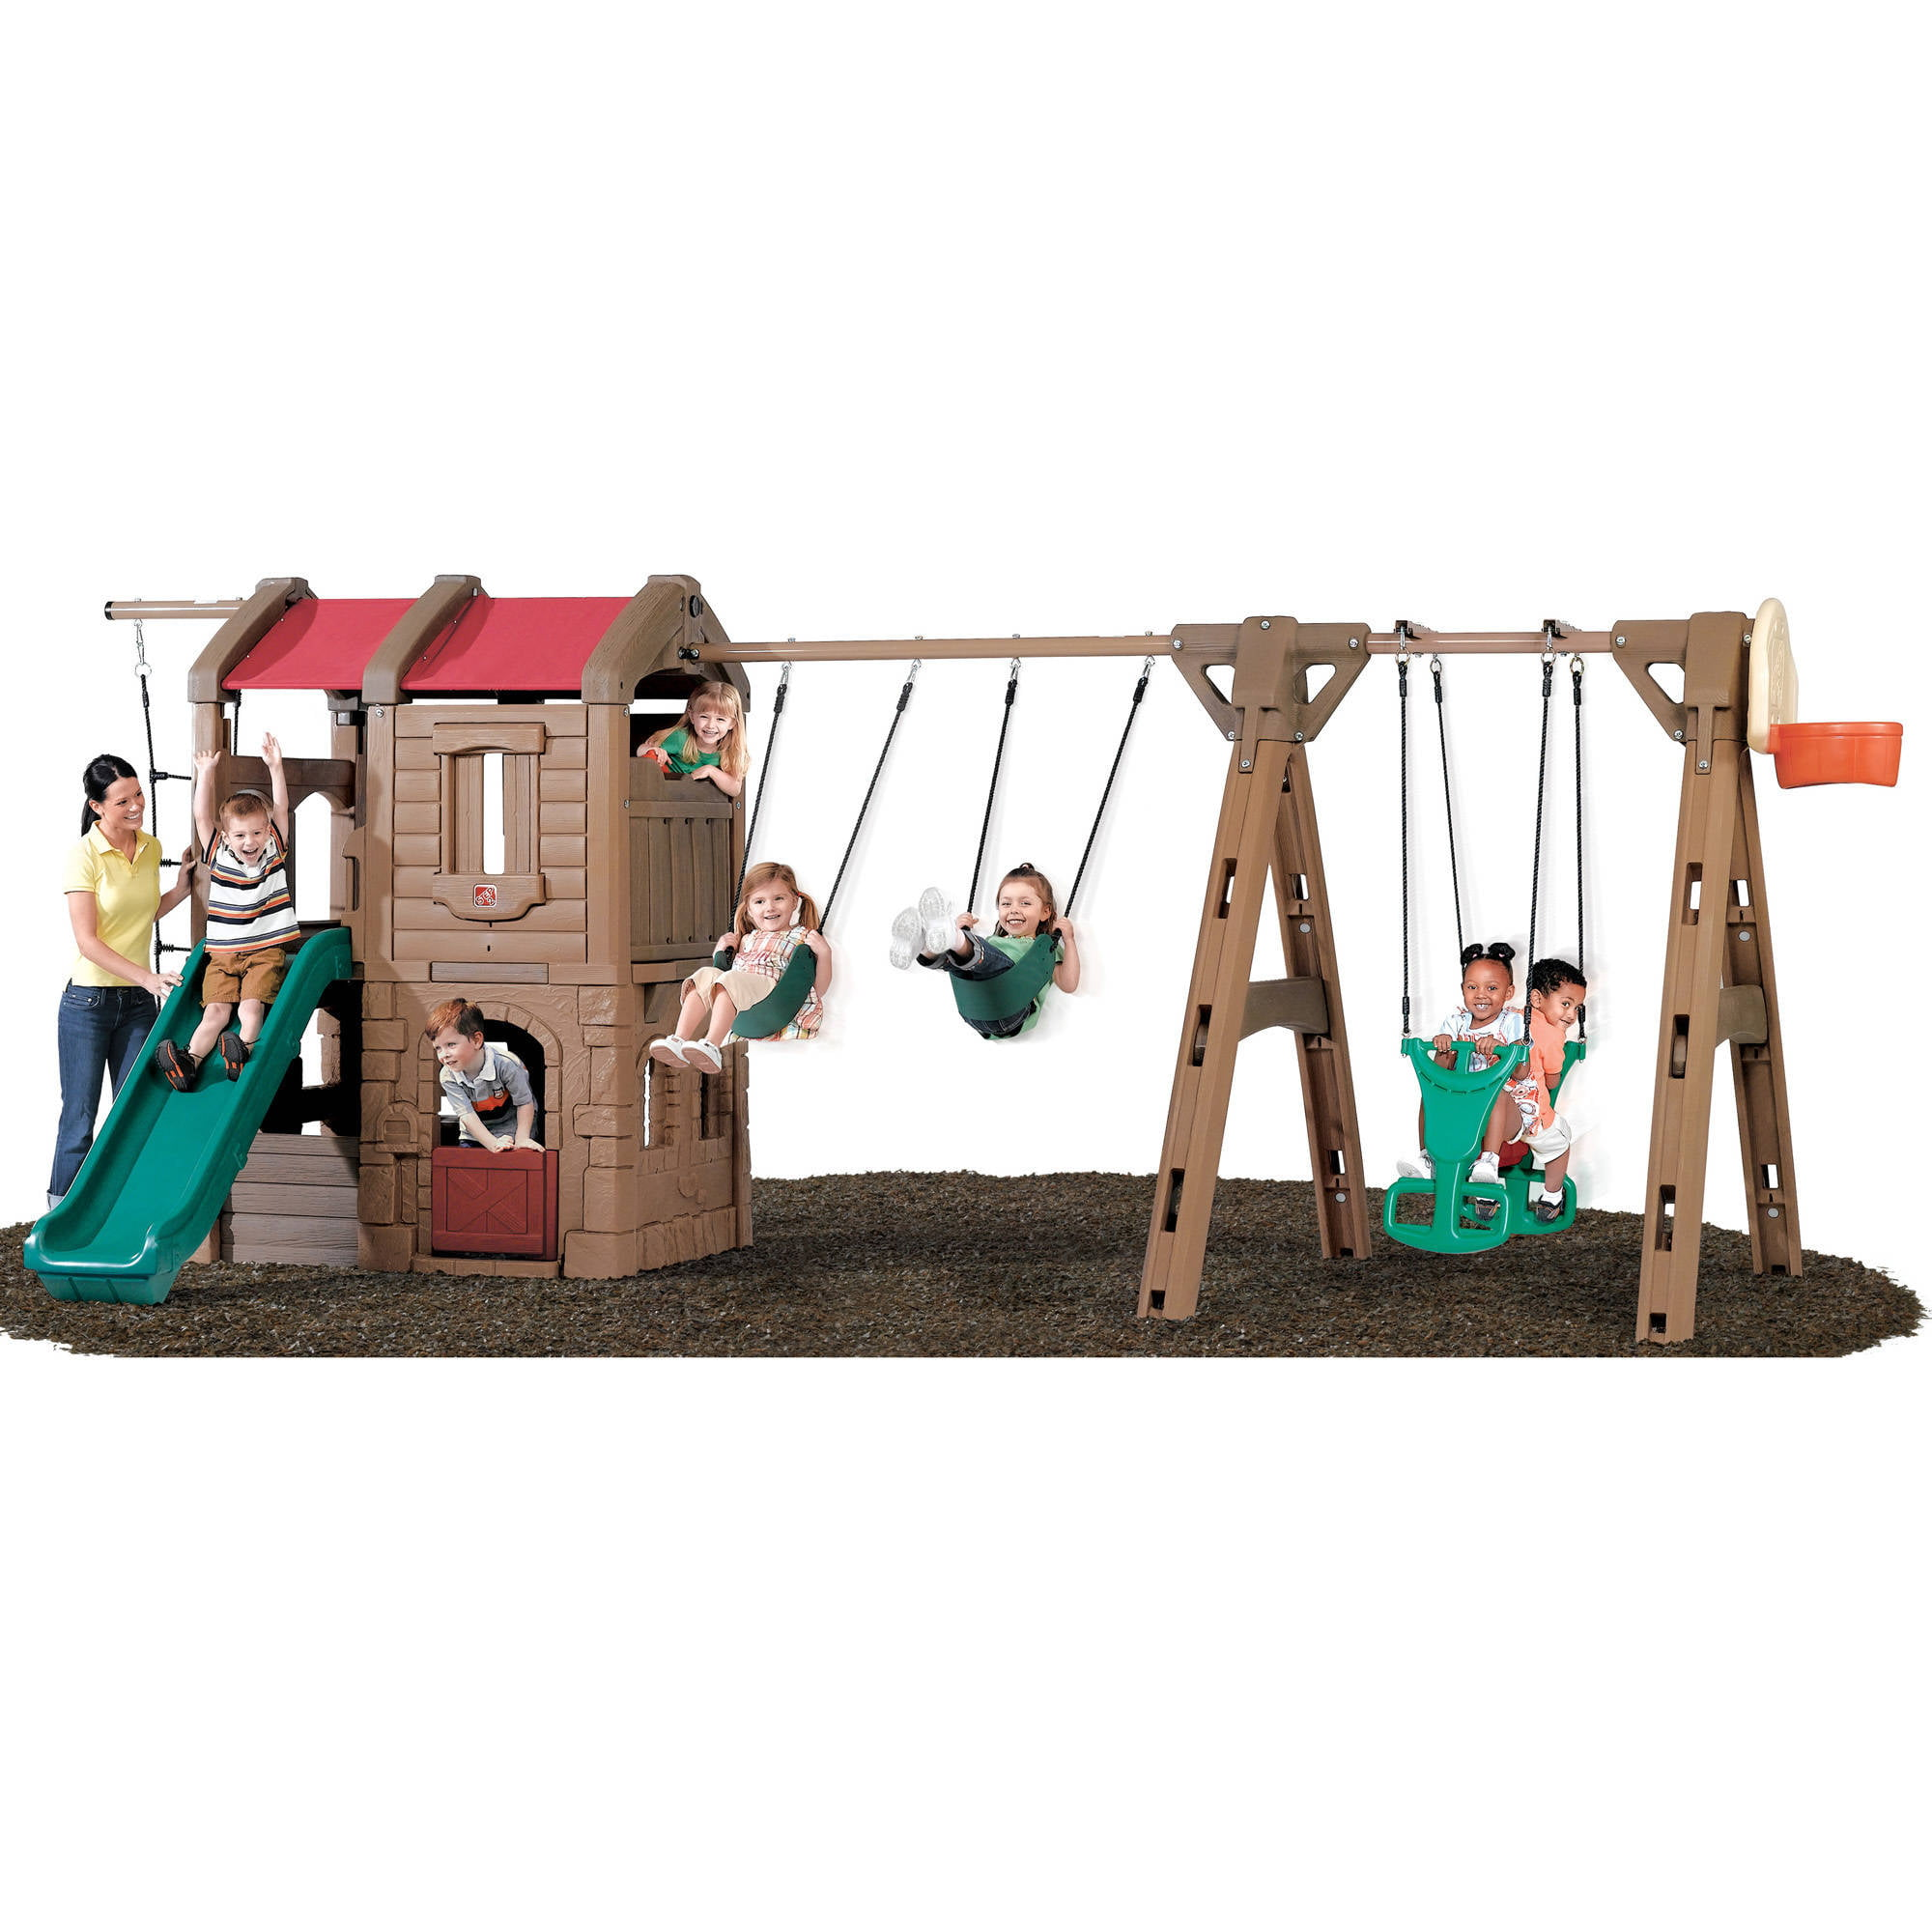 Step2 Naturally Playful Adventure Lodge Play Center Swing Set with Glider and 6' Slide by Step2